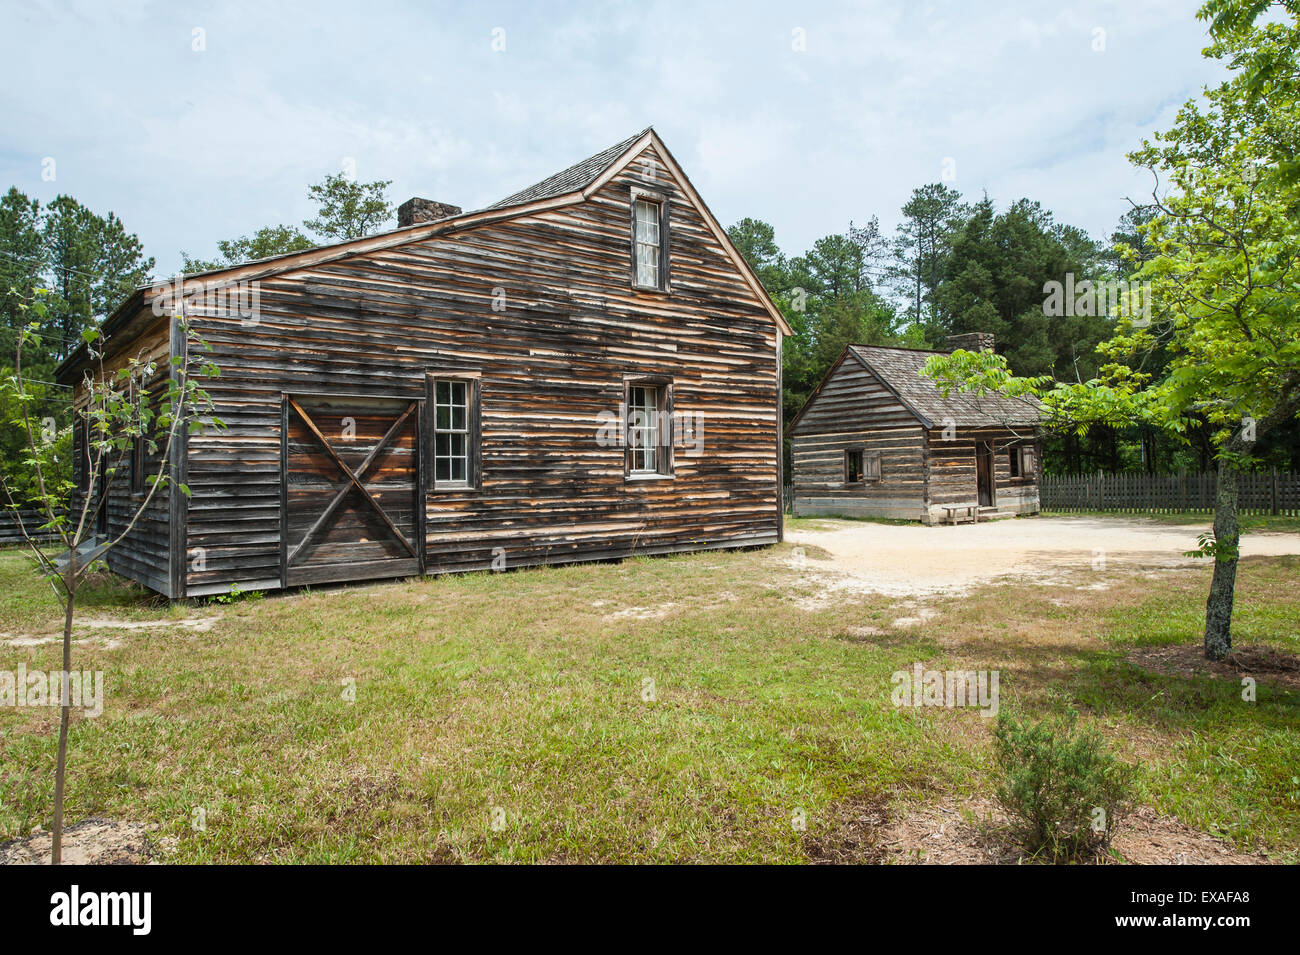 The Civil War site where the South surrendered to the North, Bennett Place State Historic Site, Durham, North Carolina, - Stock Image